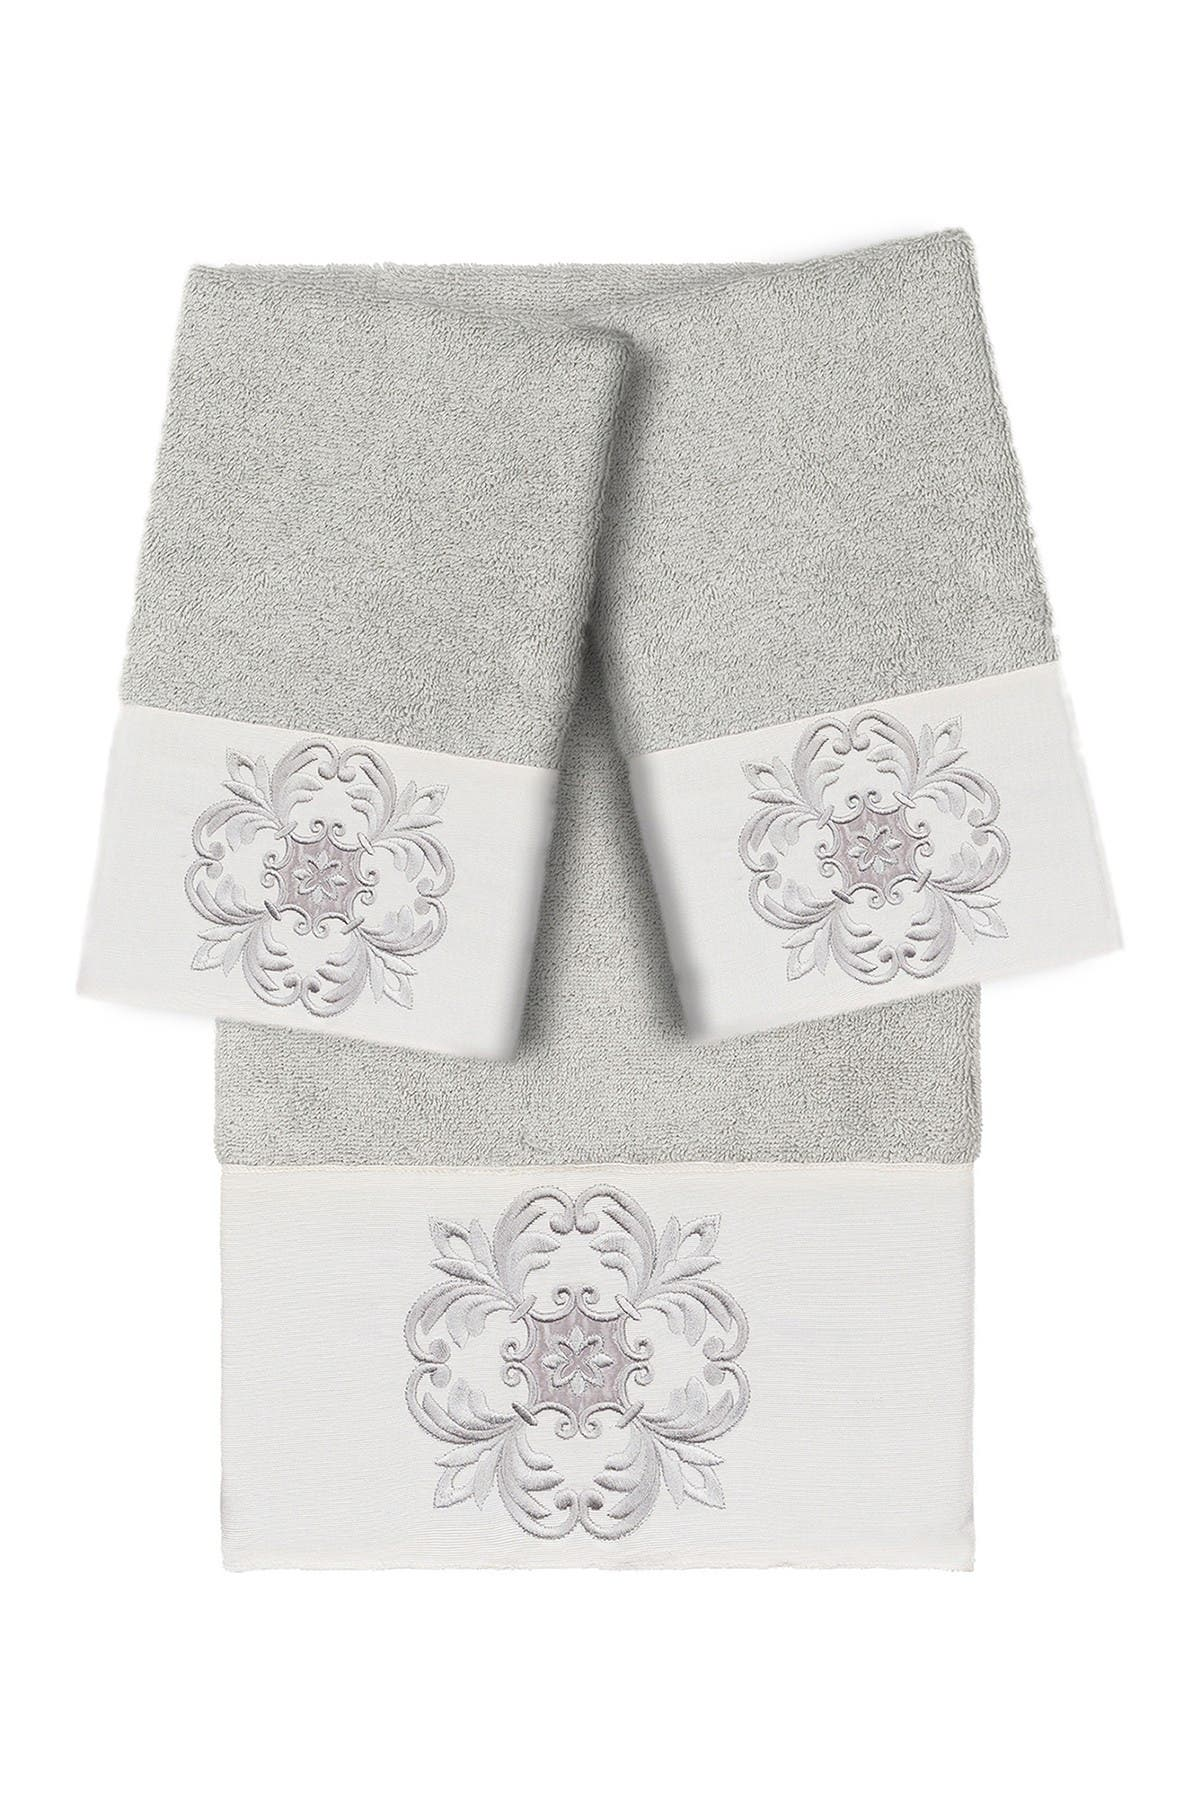 Image of LINUM HOME Alyssa Embellished Hand Towel - Light Gray